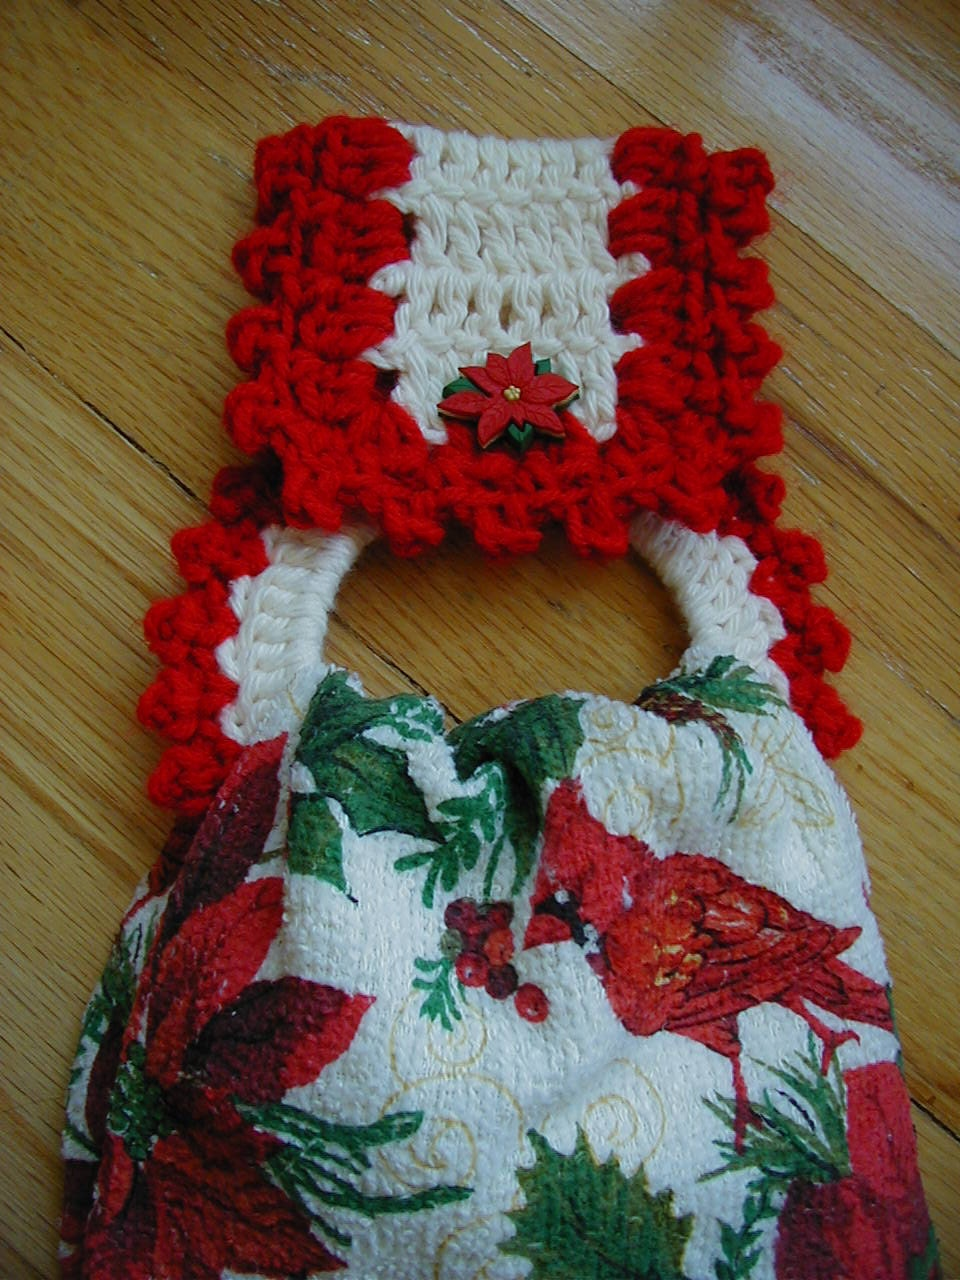 Christmas Crochet Towel Holder With Towel By Longvalleybears